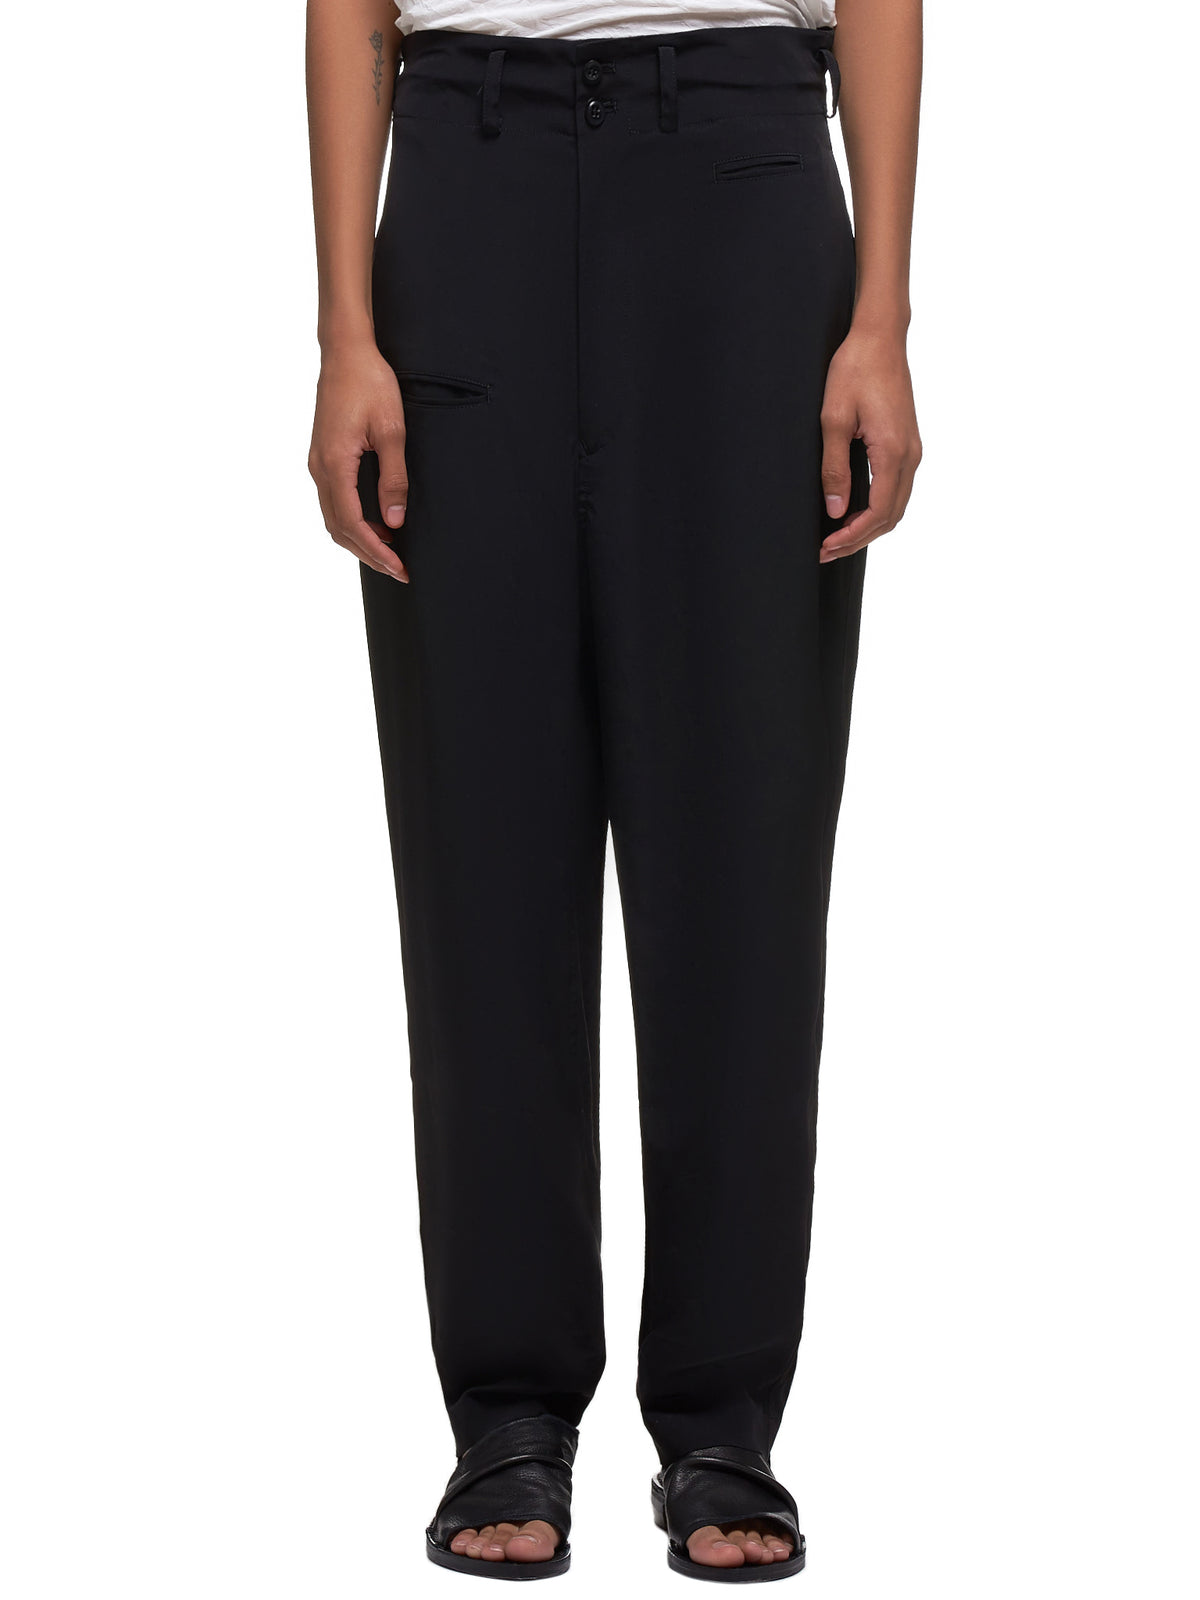 Sleek Trousers (YS-P04-500-BLACK)